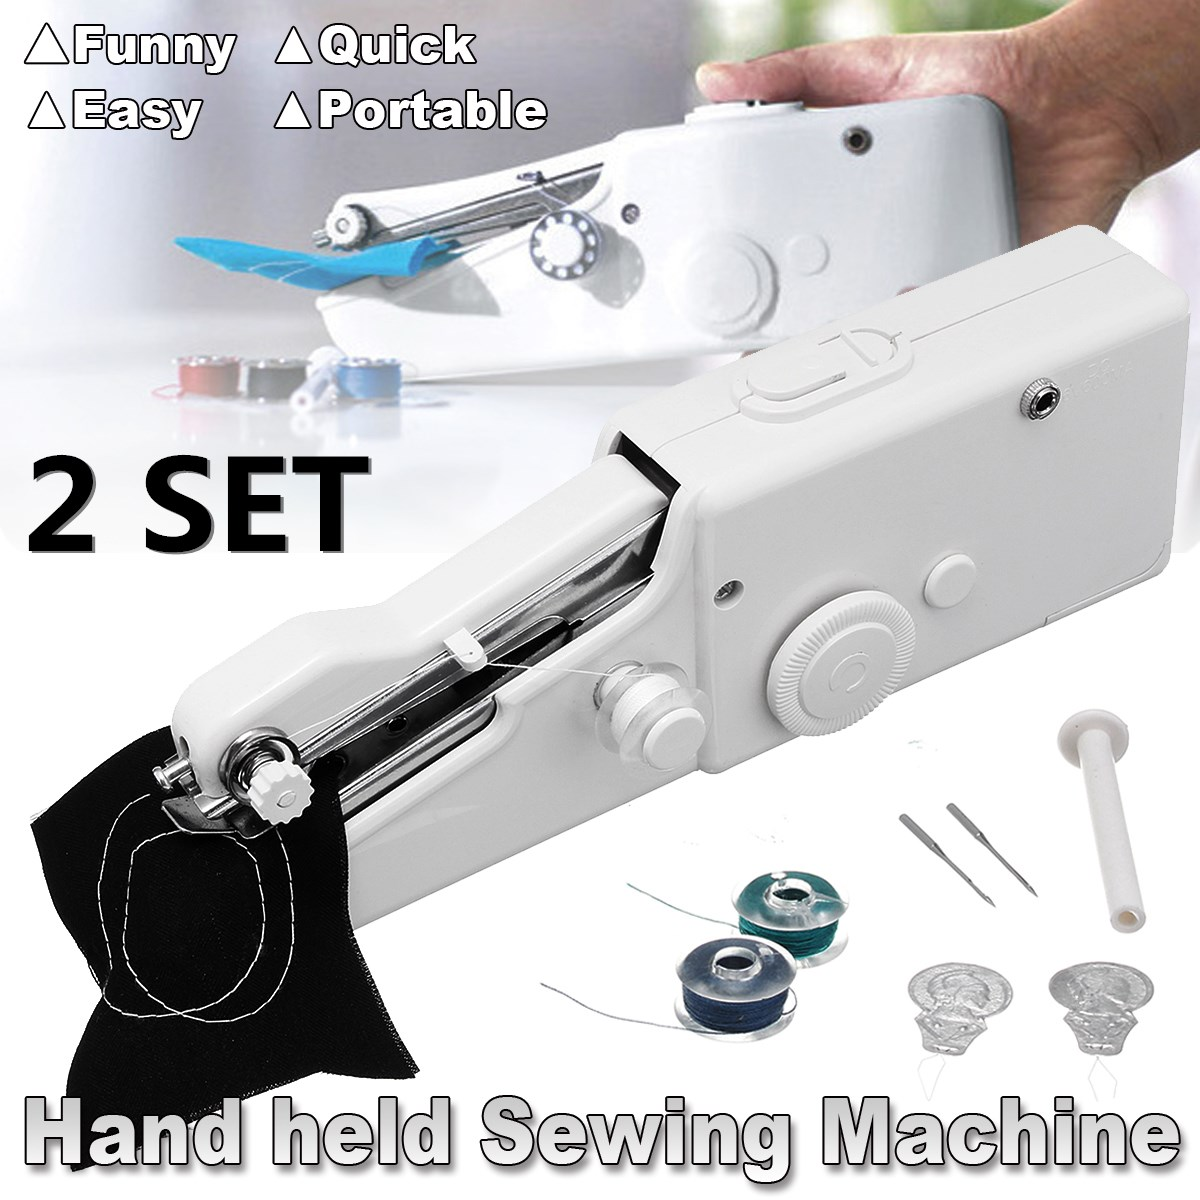 2 SET Handheld Portable Stitch Sew Cordless Handy Sewing Machine Quick Repair Tool Universal for DIY Clothing Denim Apparel Sewing Fabric Zippers Crafts Supplies (NO batteries)